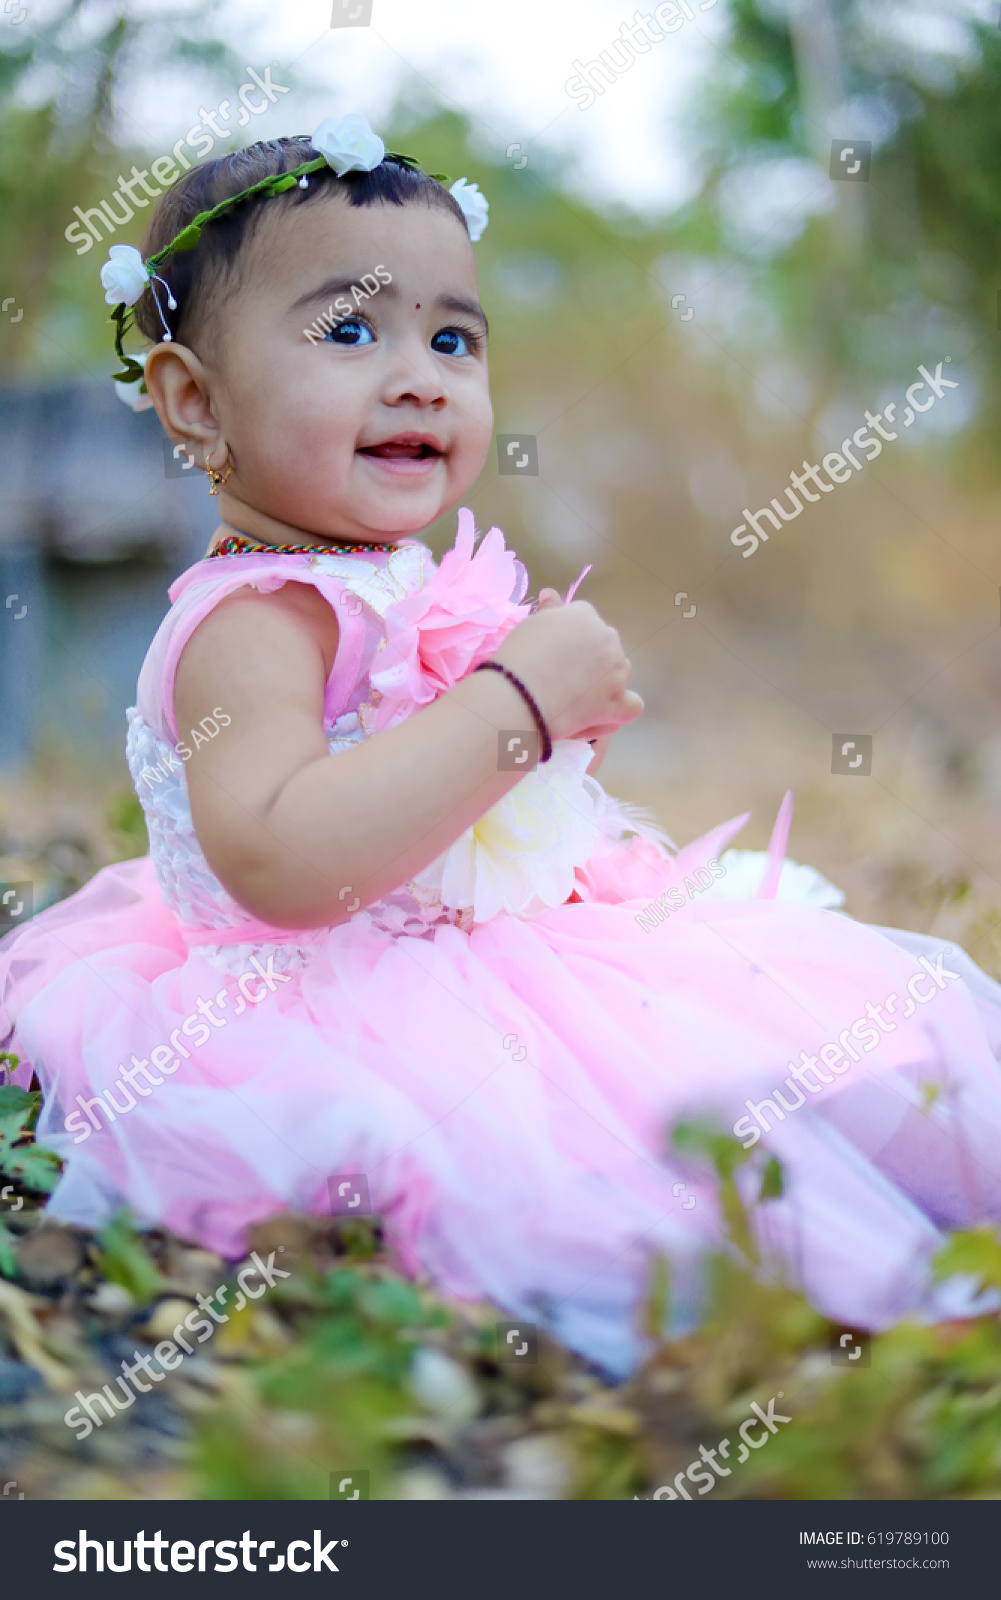 cute indian baby girl stock photo (edit now) 619789100 - shutterstock